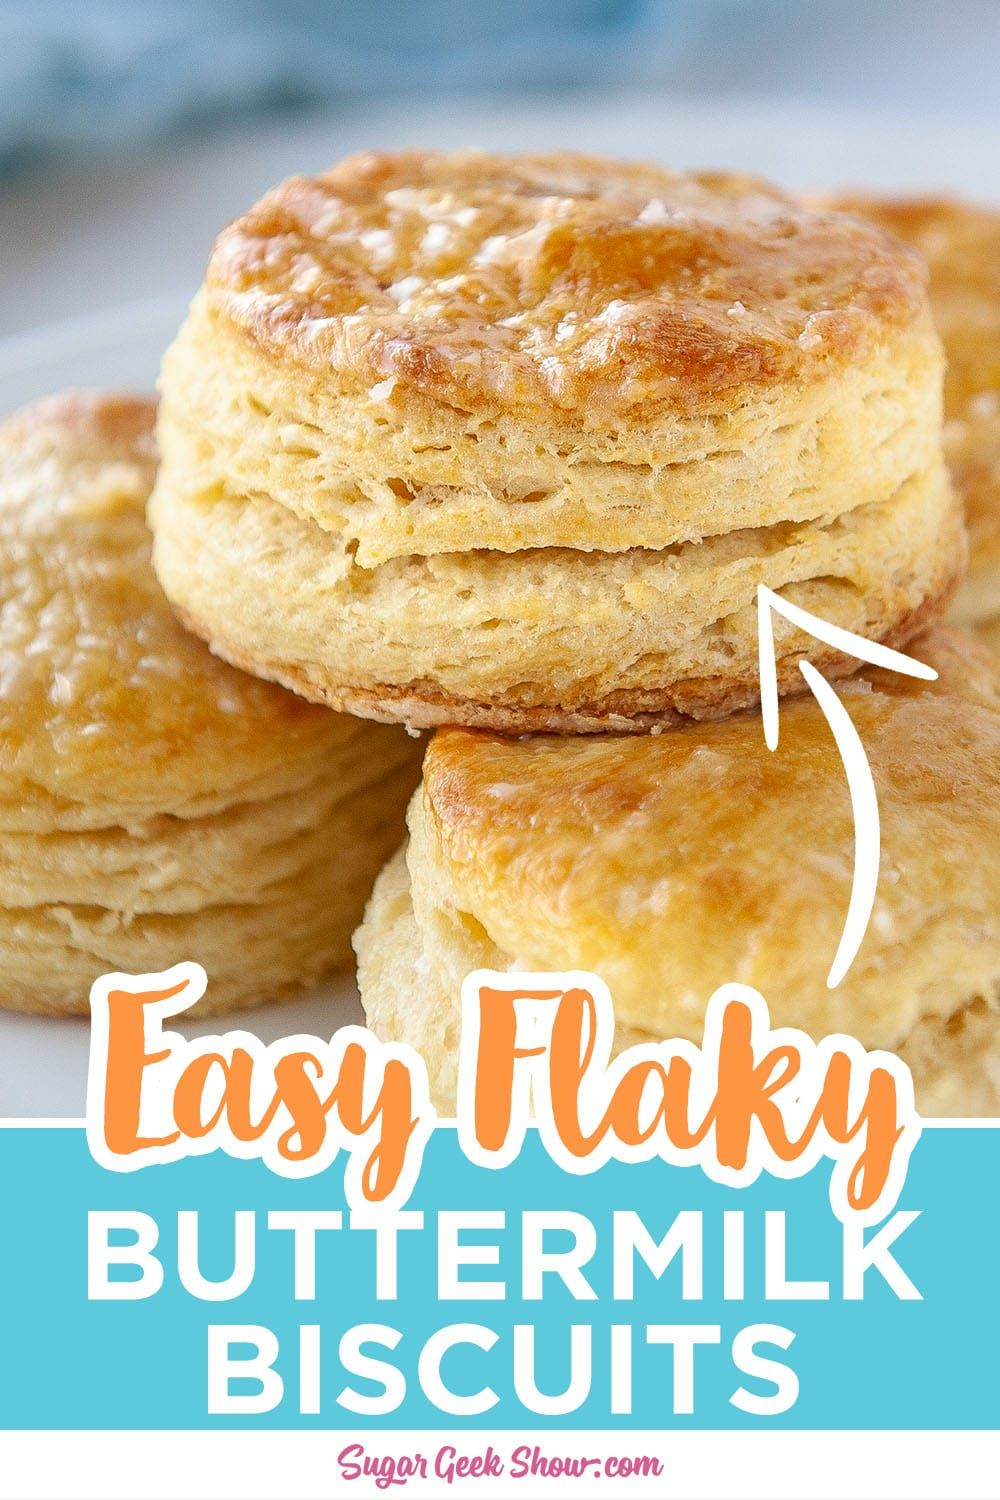 Easy Flaky Buttermilk Biscuits With Video Sugar Geek Show Recipe In 2020 Buttermilk Biscuits Savoury Baking Biscuit Recipe